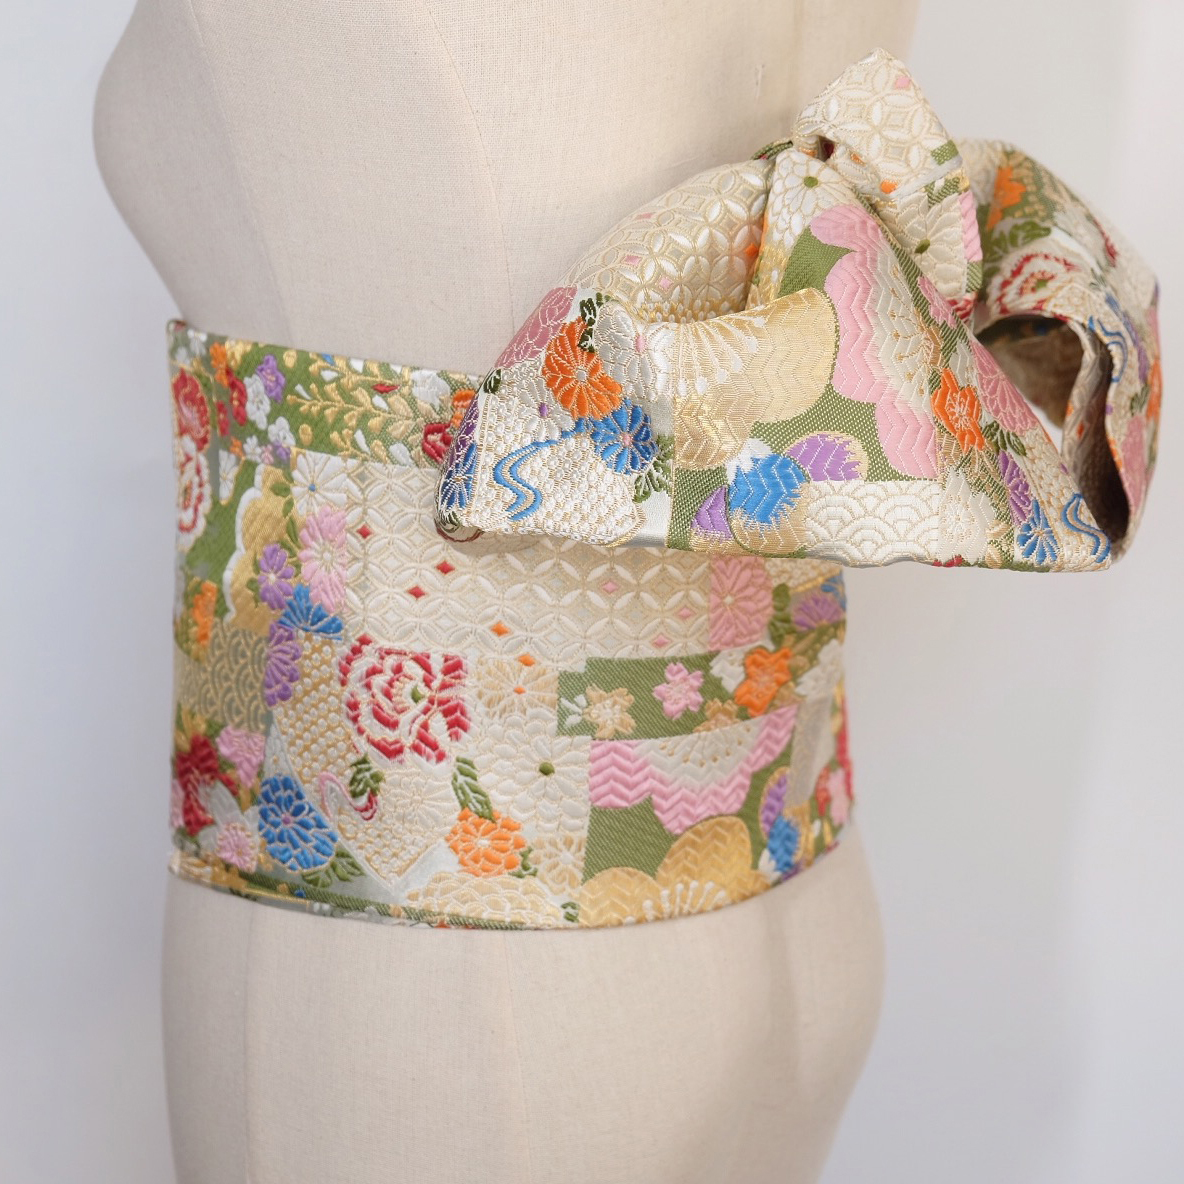 Original 2019  Kimono Accessories Japanese Style Floral Print  Waist Belt